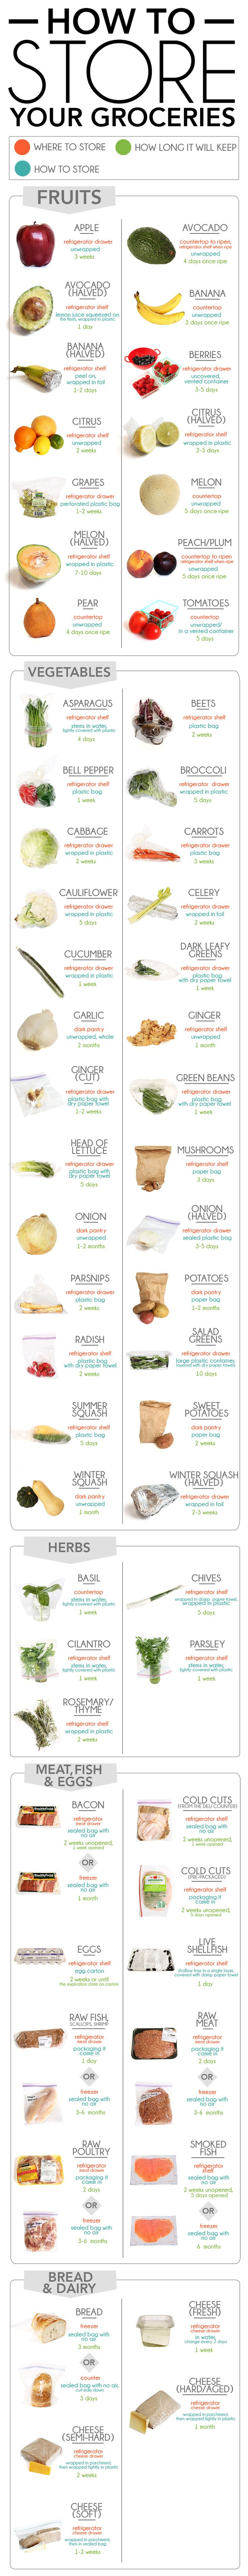 How To Store Your Groceries - it's sad how much I need this printed out & on my fridge.